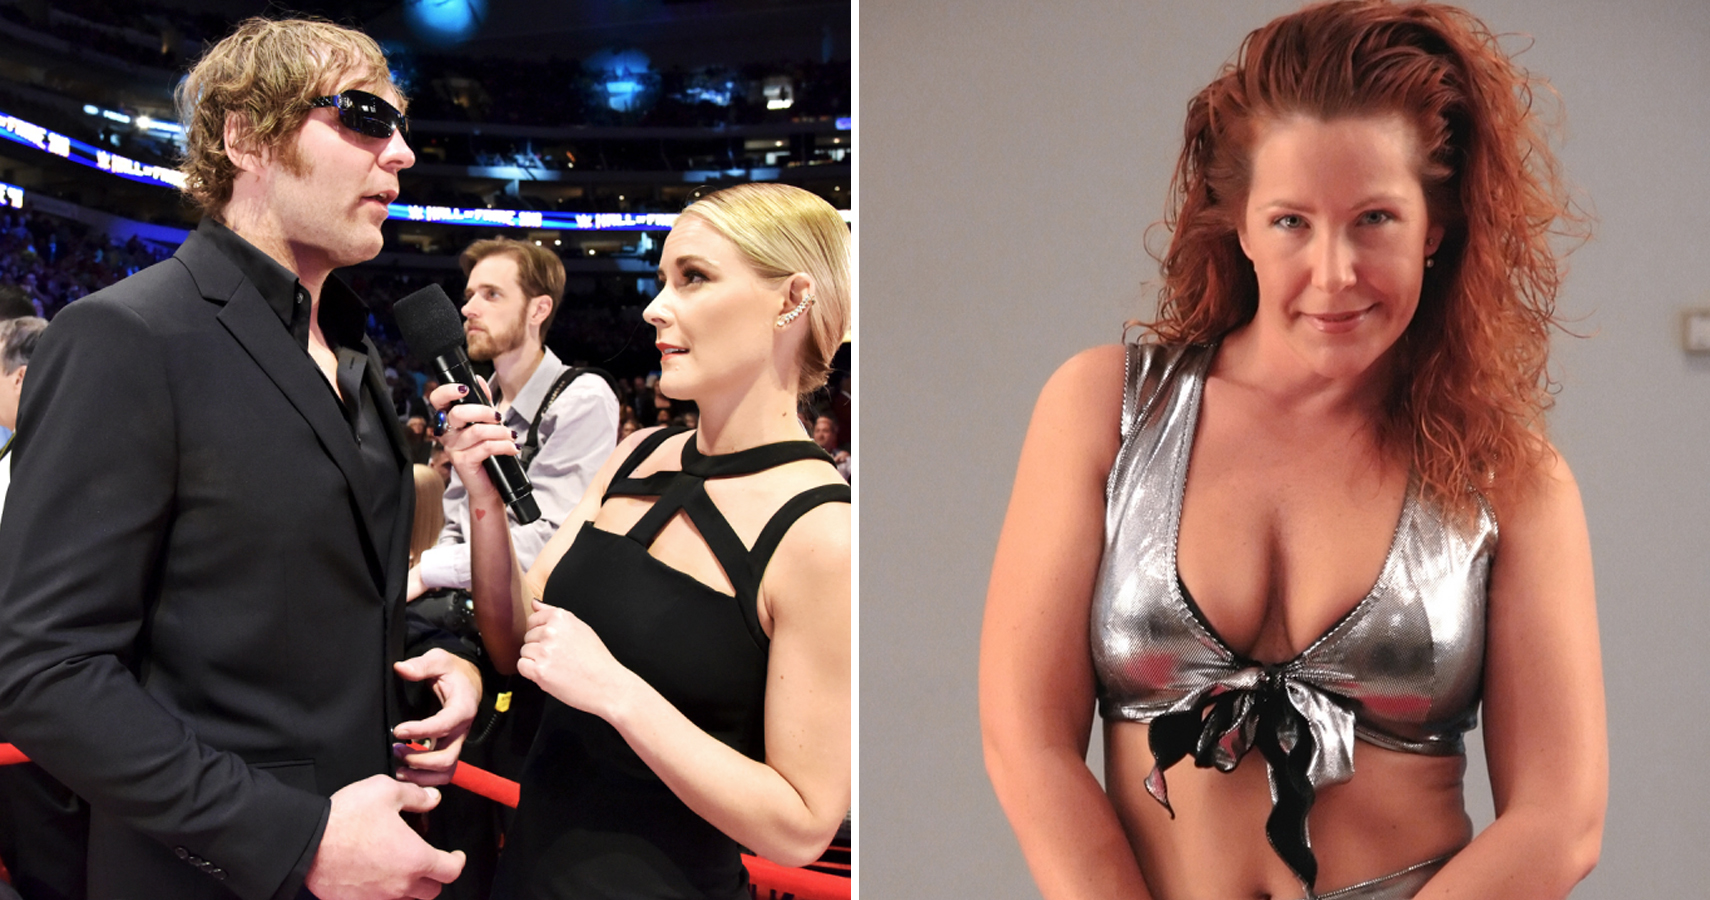 renee young is not to be dating dean ambrose